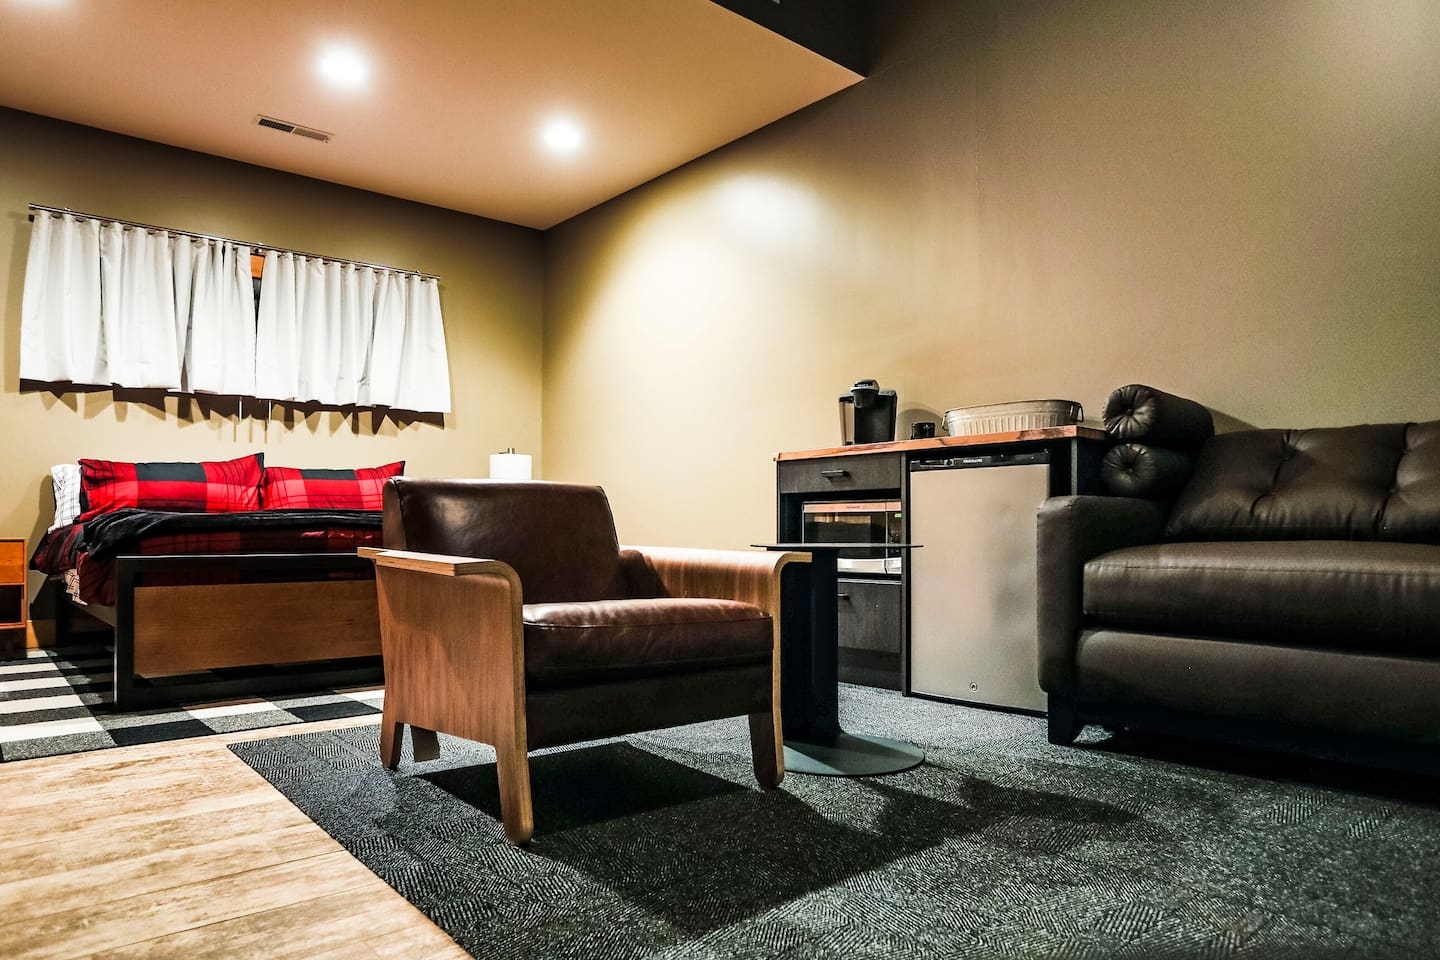 Modern Single Cabin King Room with Pullout Couch, Refridgerator, Microwave, Keurig, and Walk-in Closet